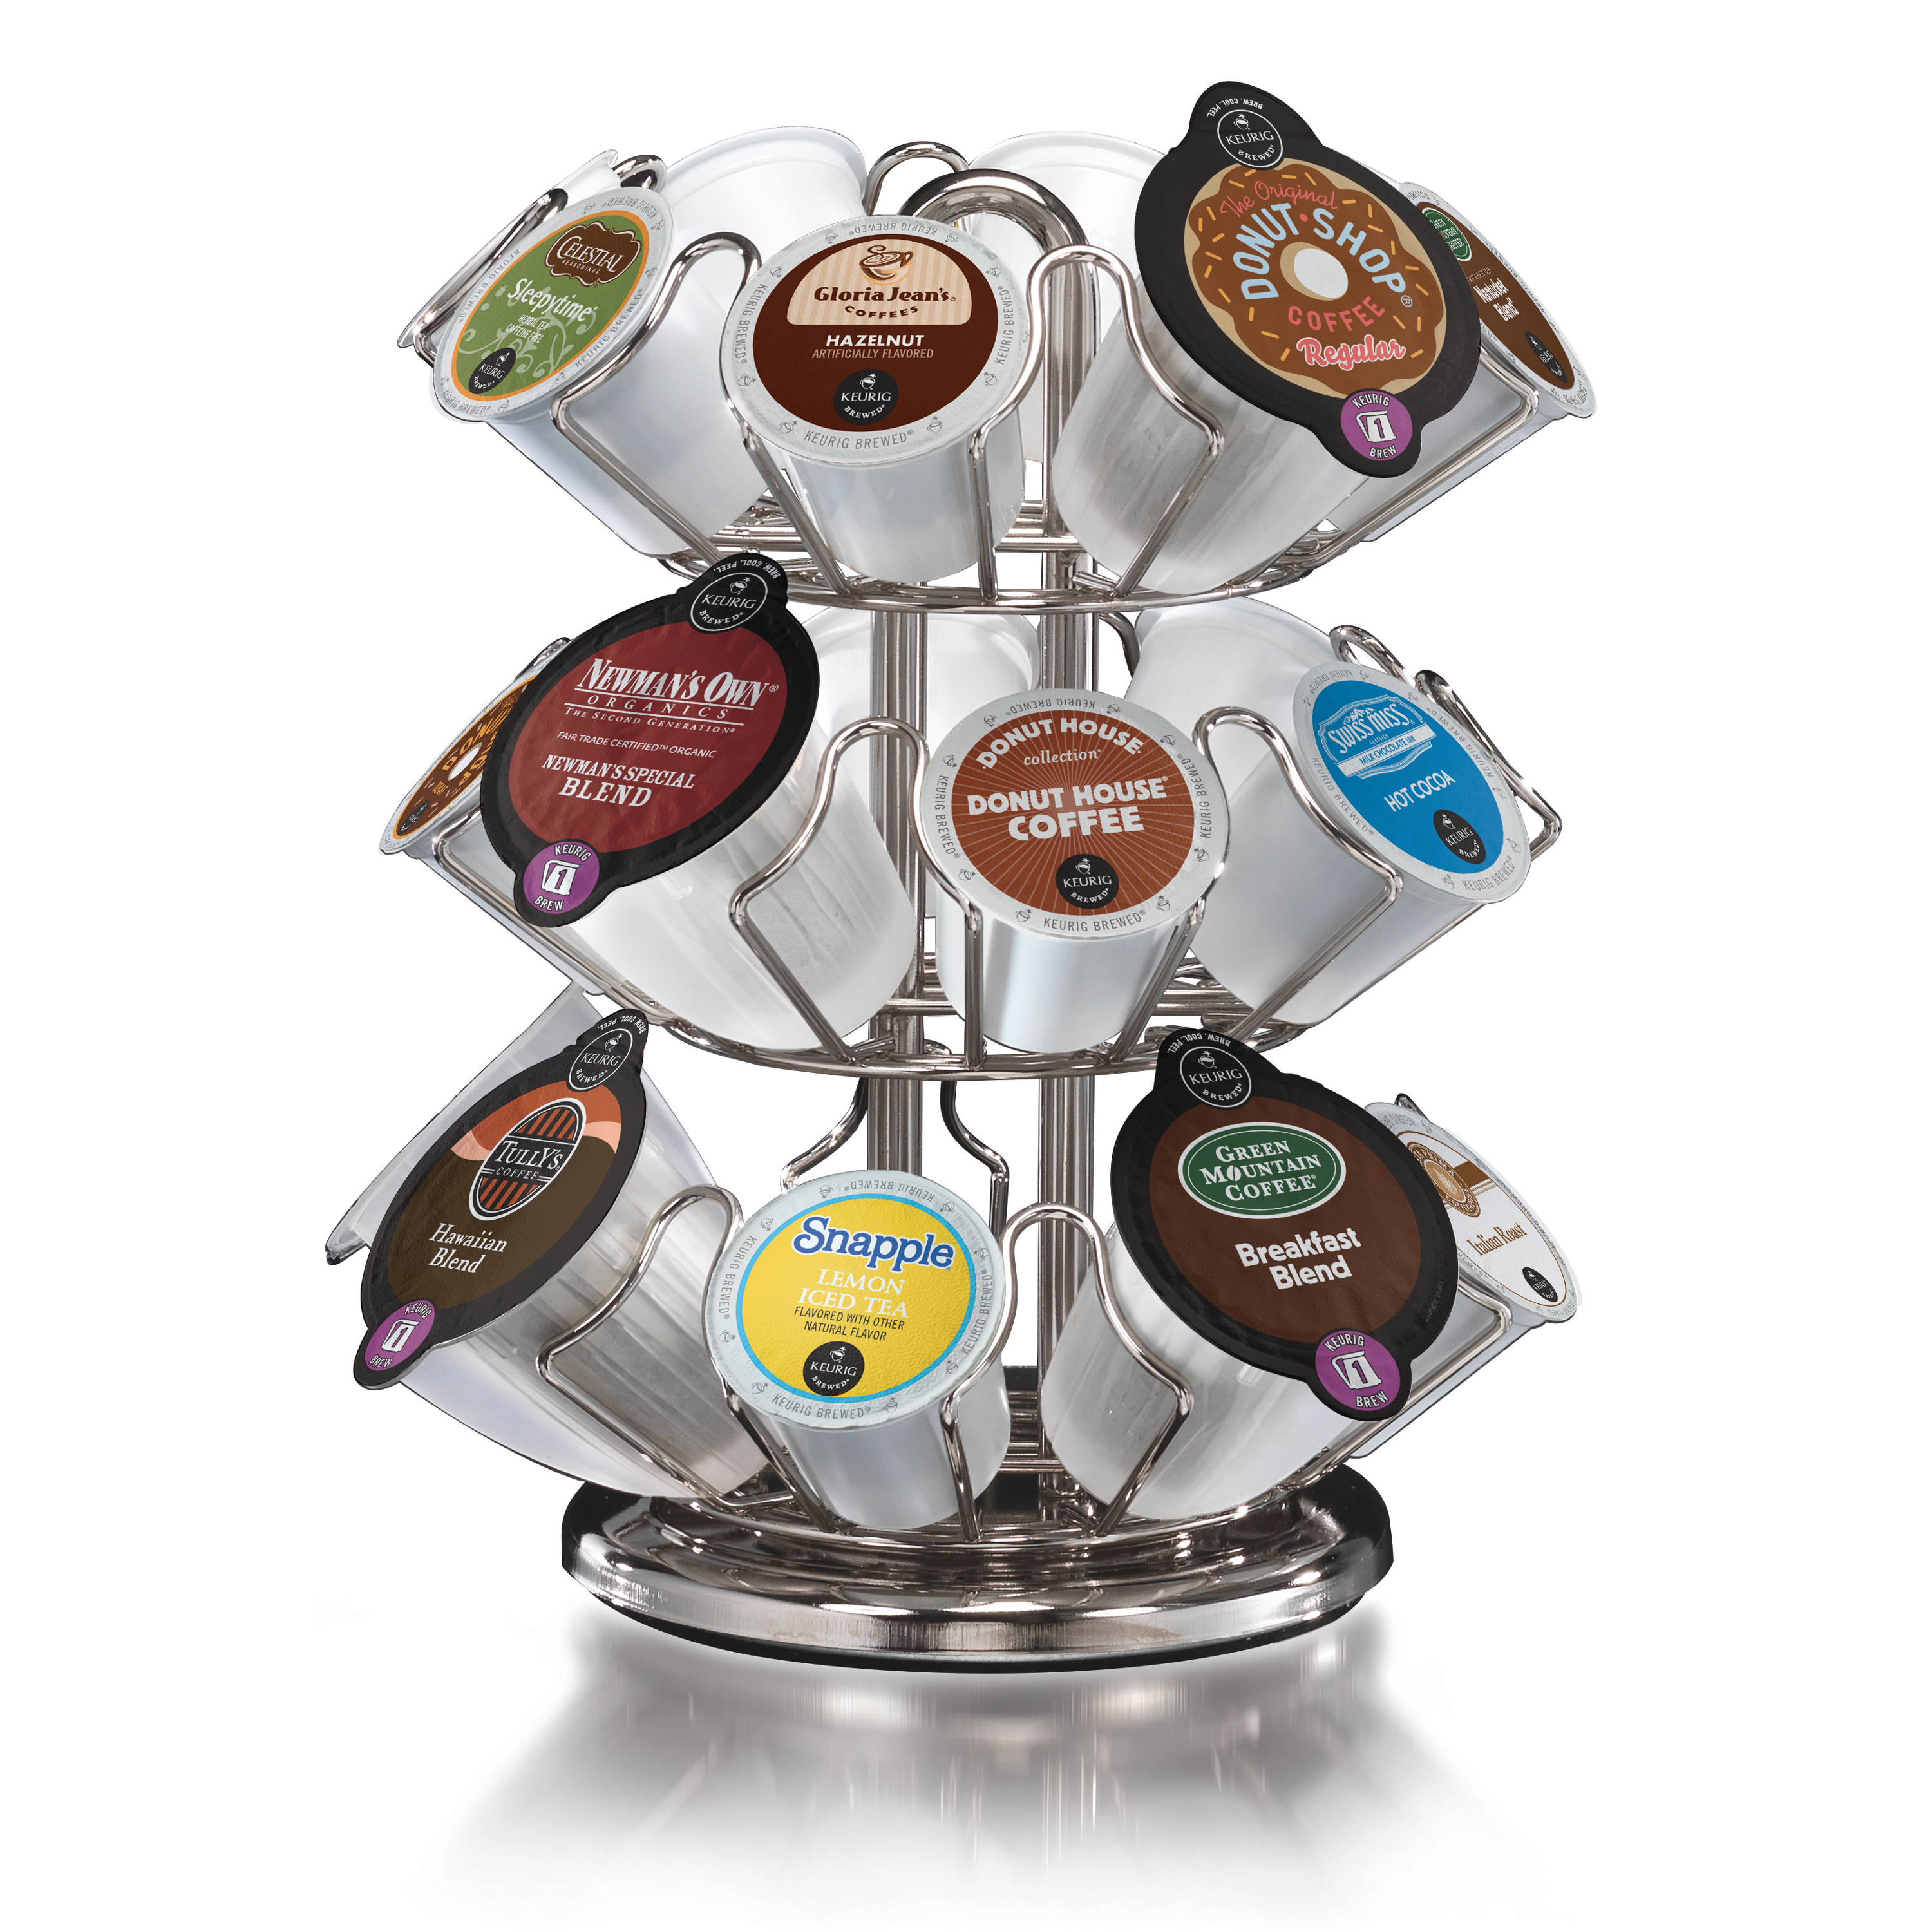 Keurig 2.0 24 Count K-Cup and K-Carafe Pack Silver Finish Carousel